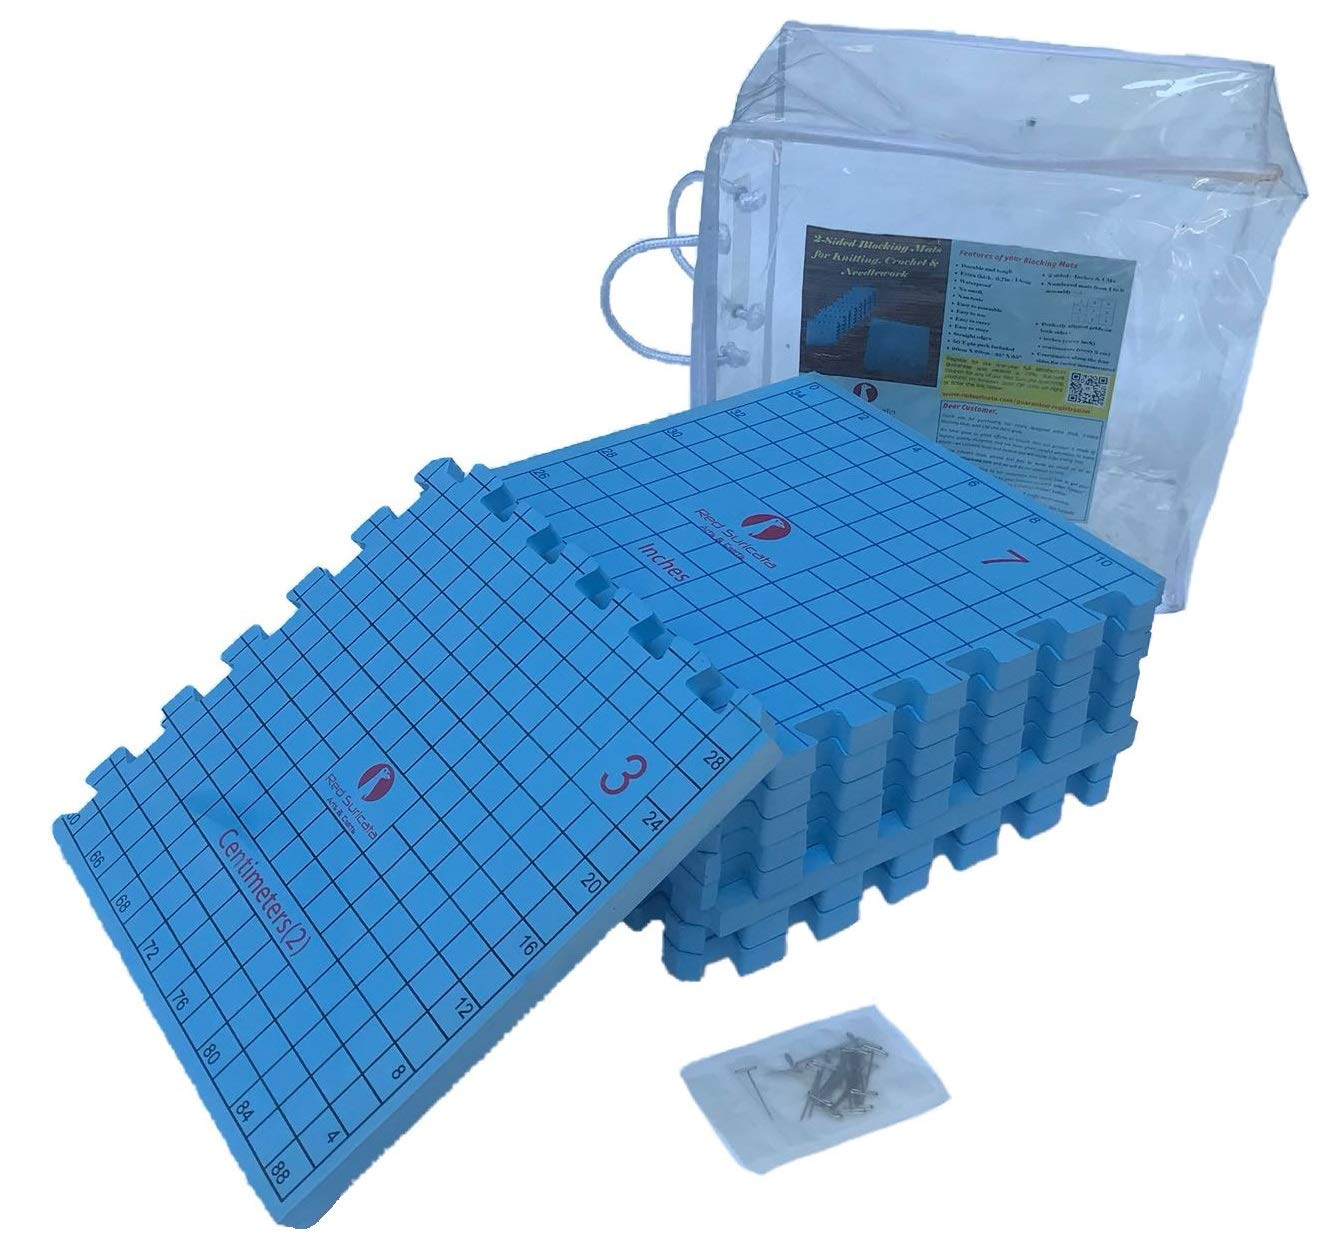 Red Suricata Blocking Mats for Knitting - 2-Sided Extra Thick Blocking Boards with INCH & cm Grids, Coordinates & Straight Edges in Storage Bag - 50 T-pins - for Knit, Crochet, Lace or Needlework